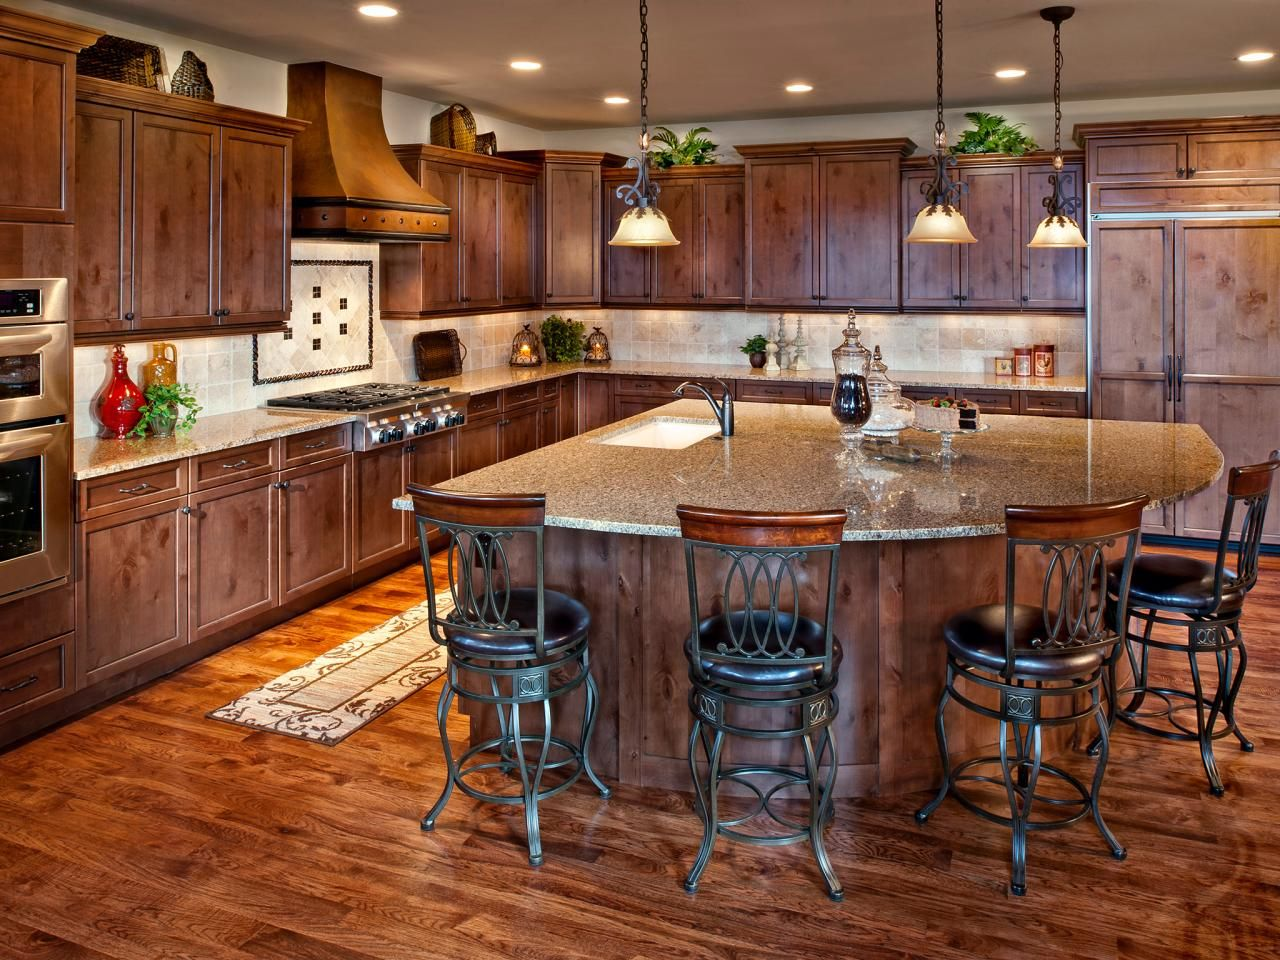 Antique Kitchen Design Property Inspiration Decorating Design